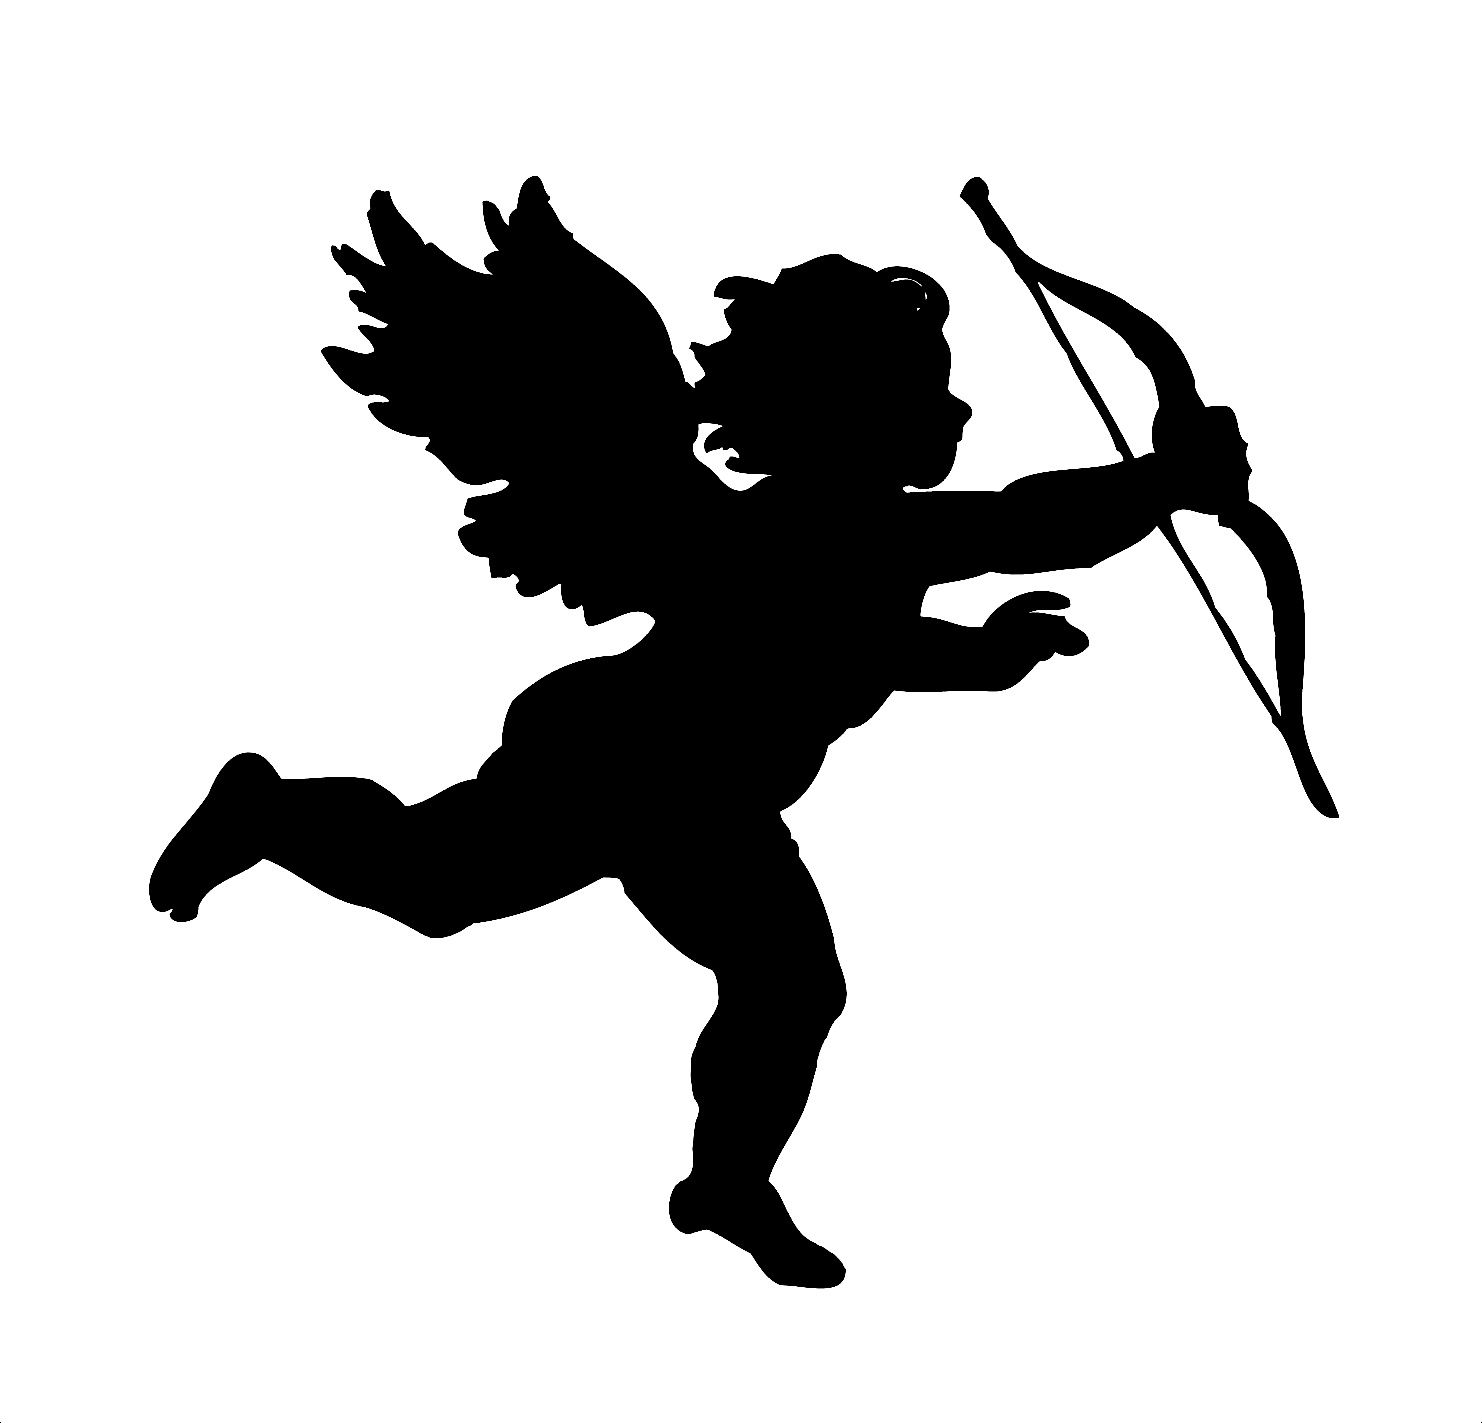 angel silhouette angel silhouette free stock photo public domain pictures angel silhouette